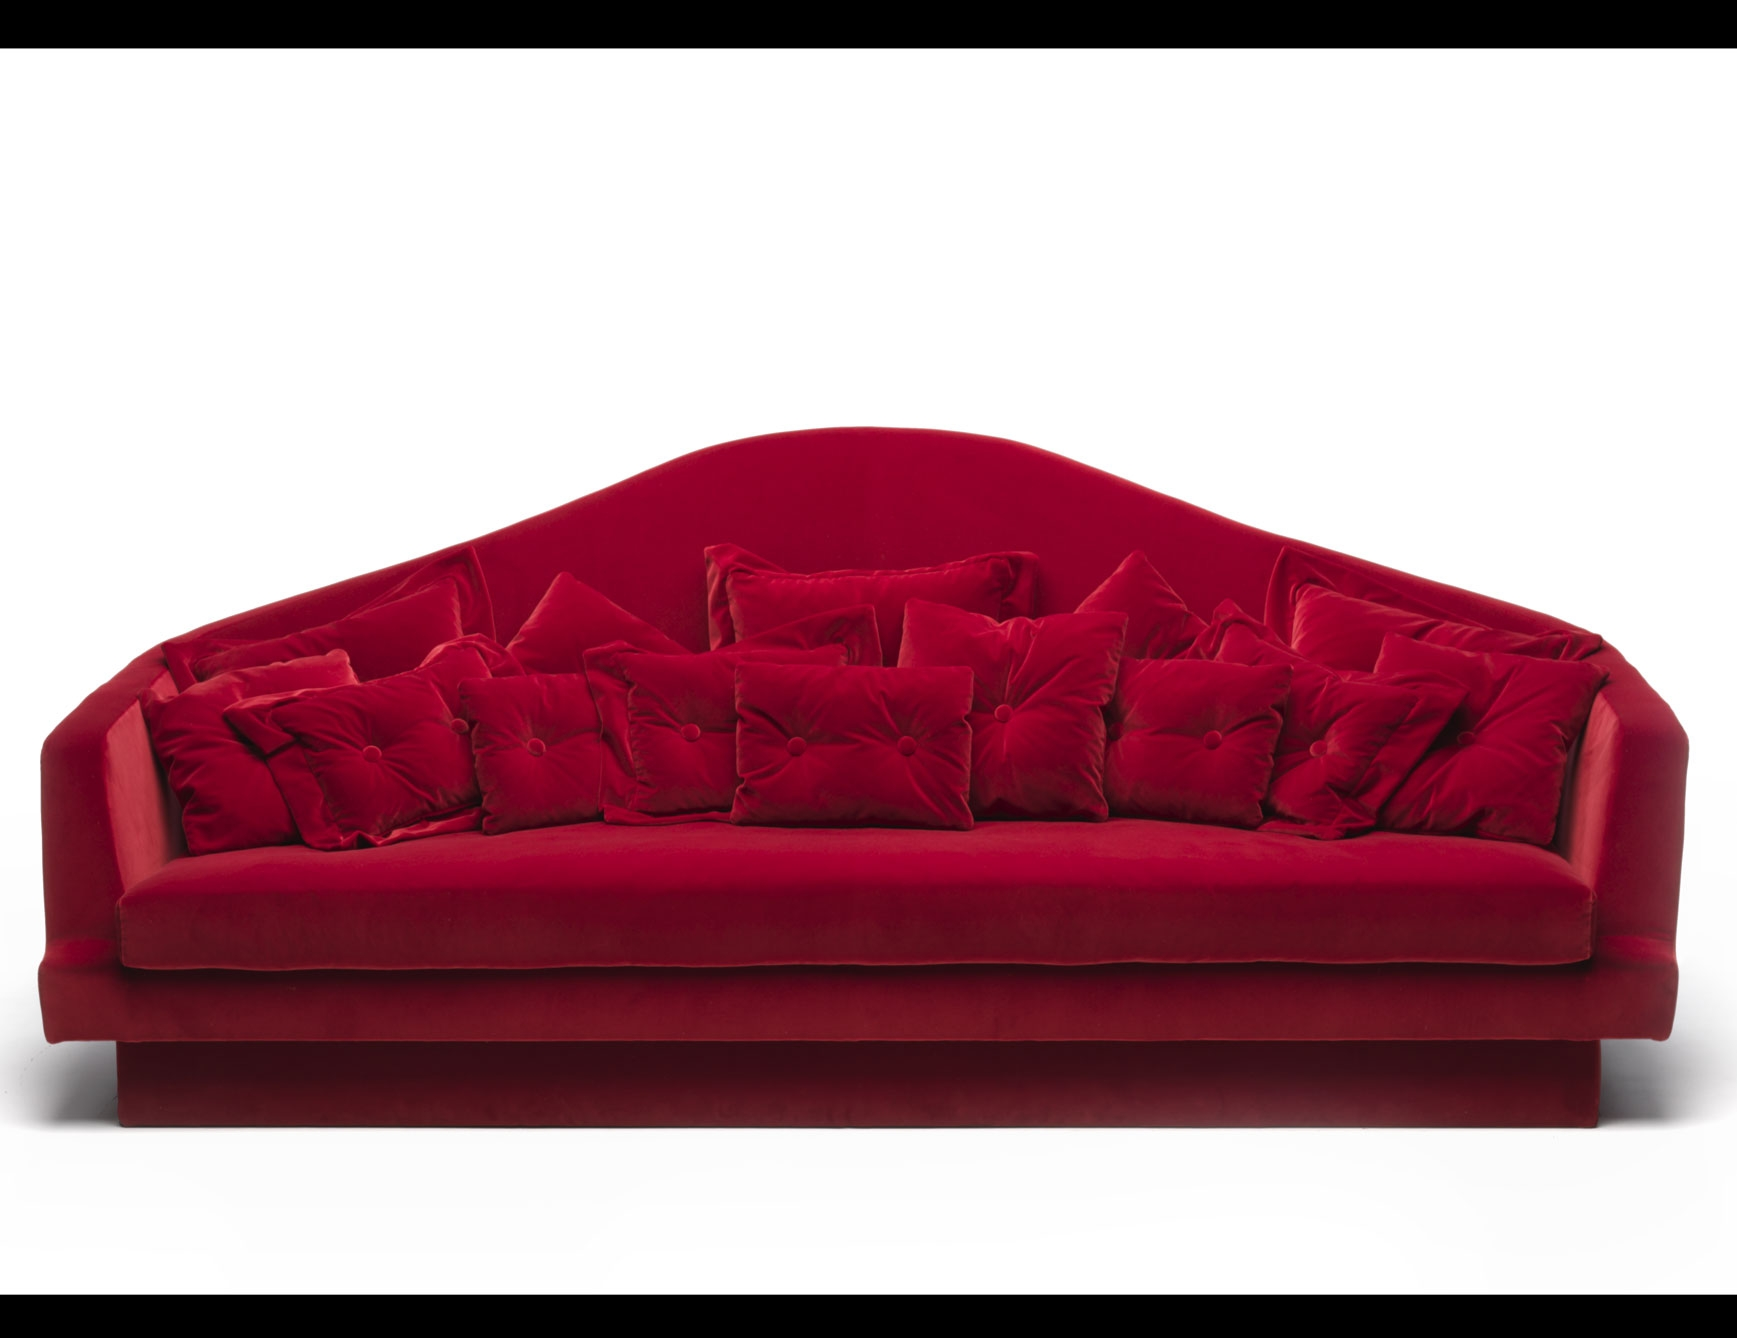 52 Red Sofas Reclining Sofas For Sale Cheap Red Leather Pertaining To Red Sofas And Chairs (Image 1 of 15)